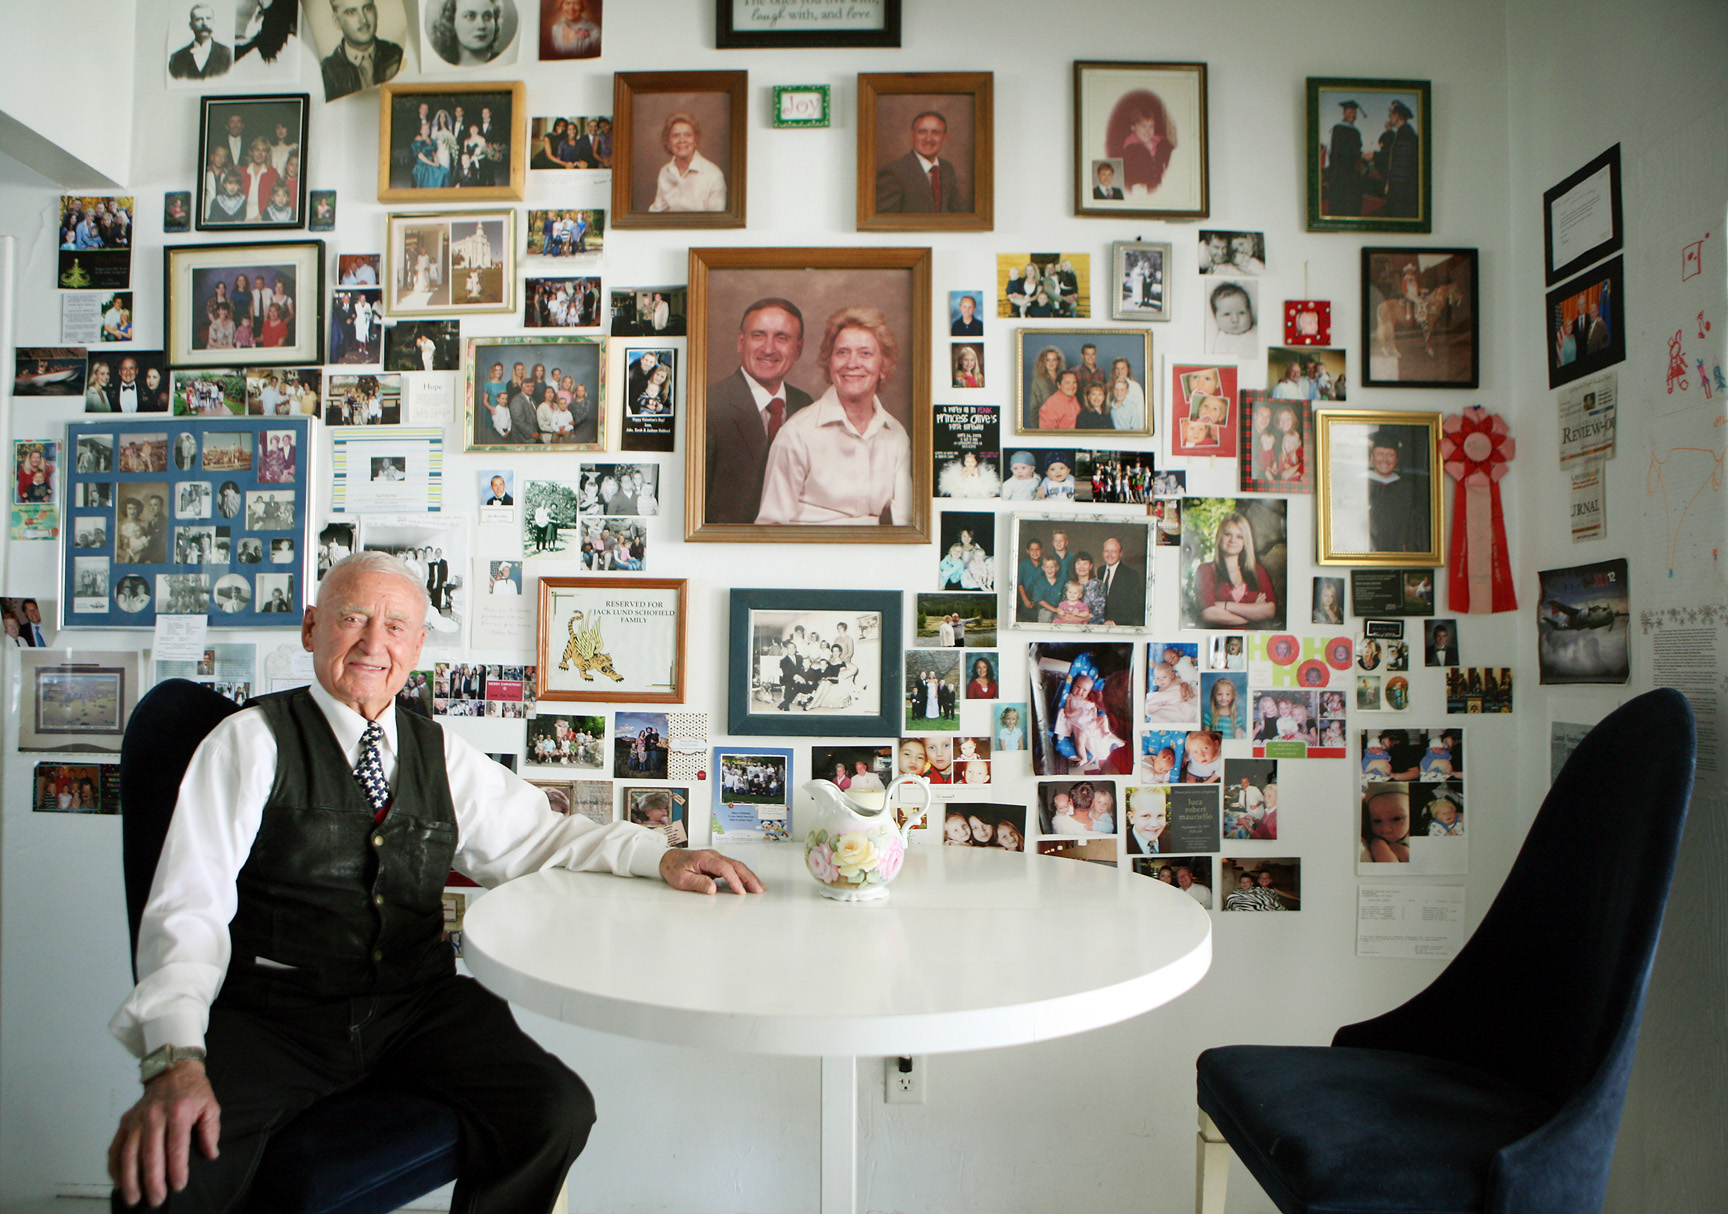 Dr. Jack Schofield, a member of the Nevada System of Higher Education Board of Regents, sits in front of a collage of family photographs in his kitchen Monday, March 11, 2013, in Las Vegas. Schofield, 90, who has six children and has been married to his wife Alene for 71 years, has an extensive list of accomplishments in Las Vegas and Nevada including a middle school named after him. The University of Utah is honoring Schofield with the College of Science Distinguished Alumni Award.